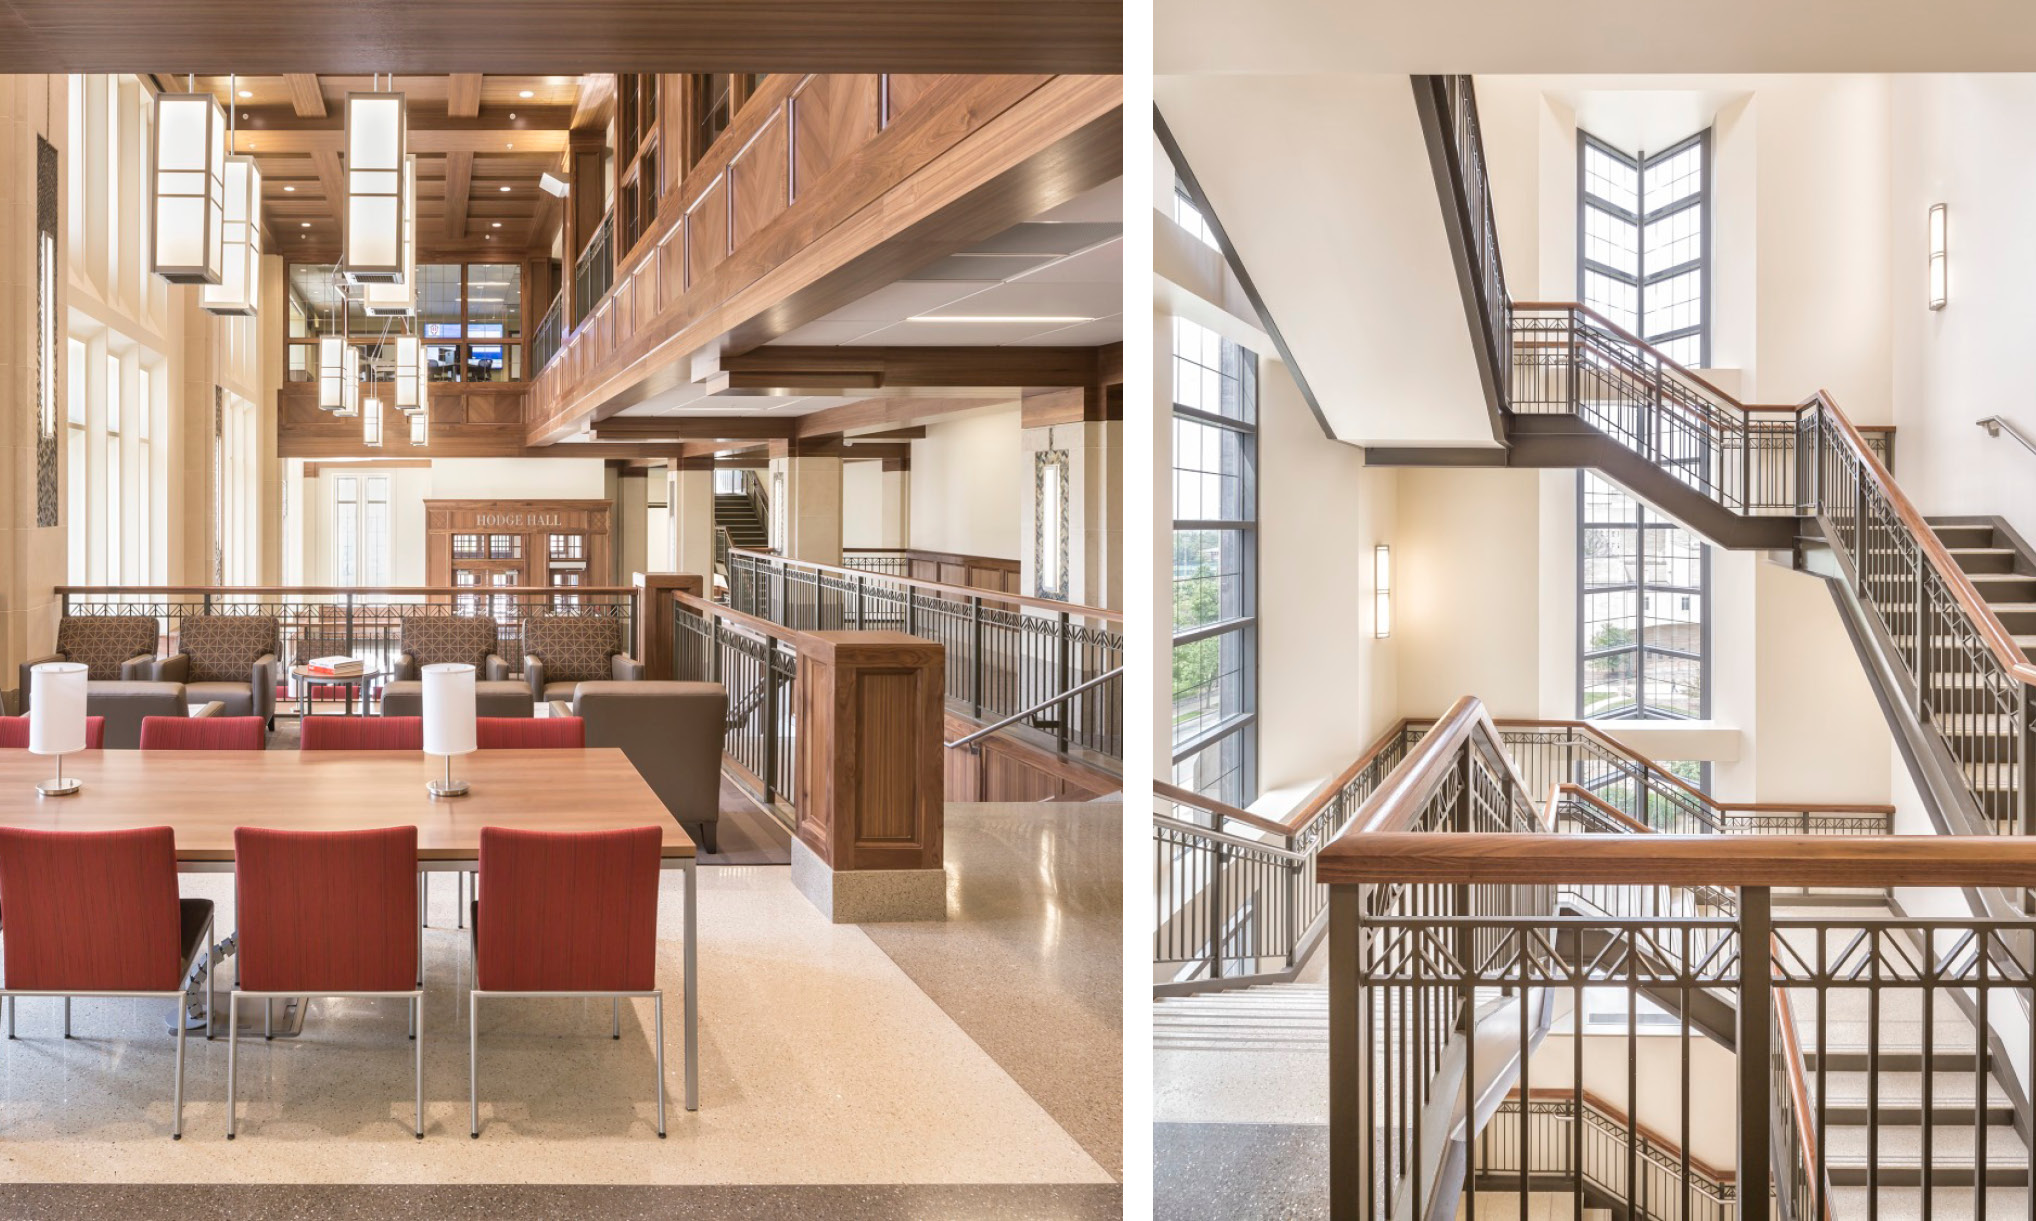 Kelley School of Business Extension and Renovation